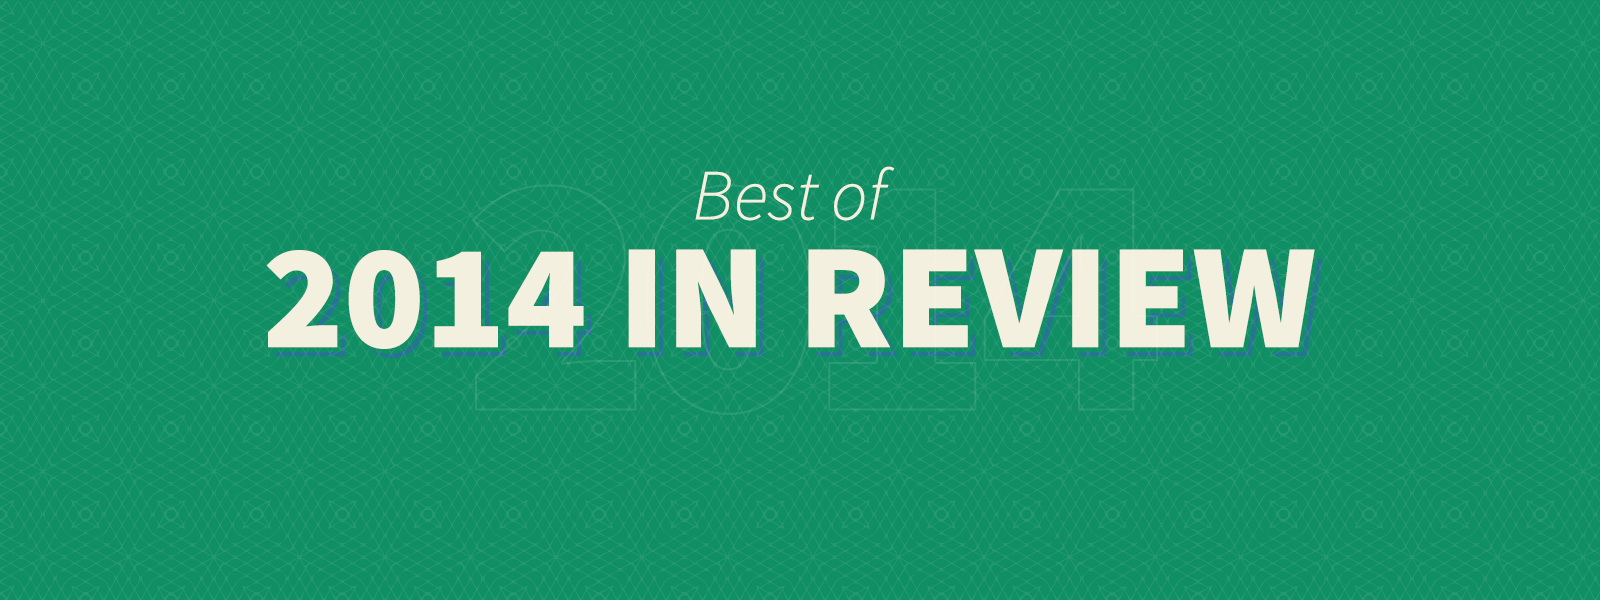 The 10 coolest 2014 year-in-review sites - The Iconfinder Blog